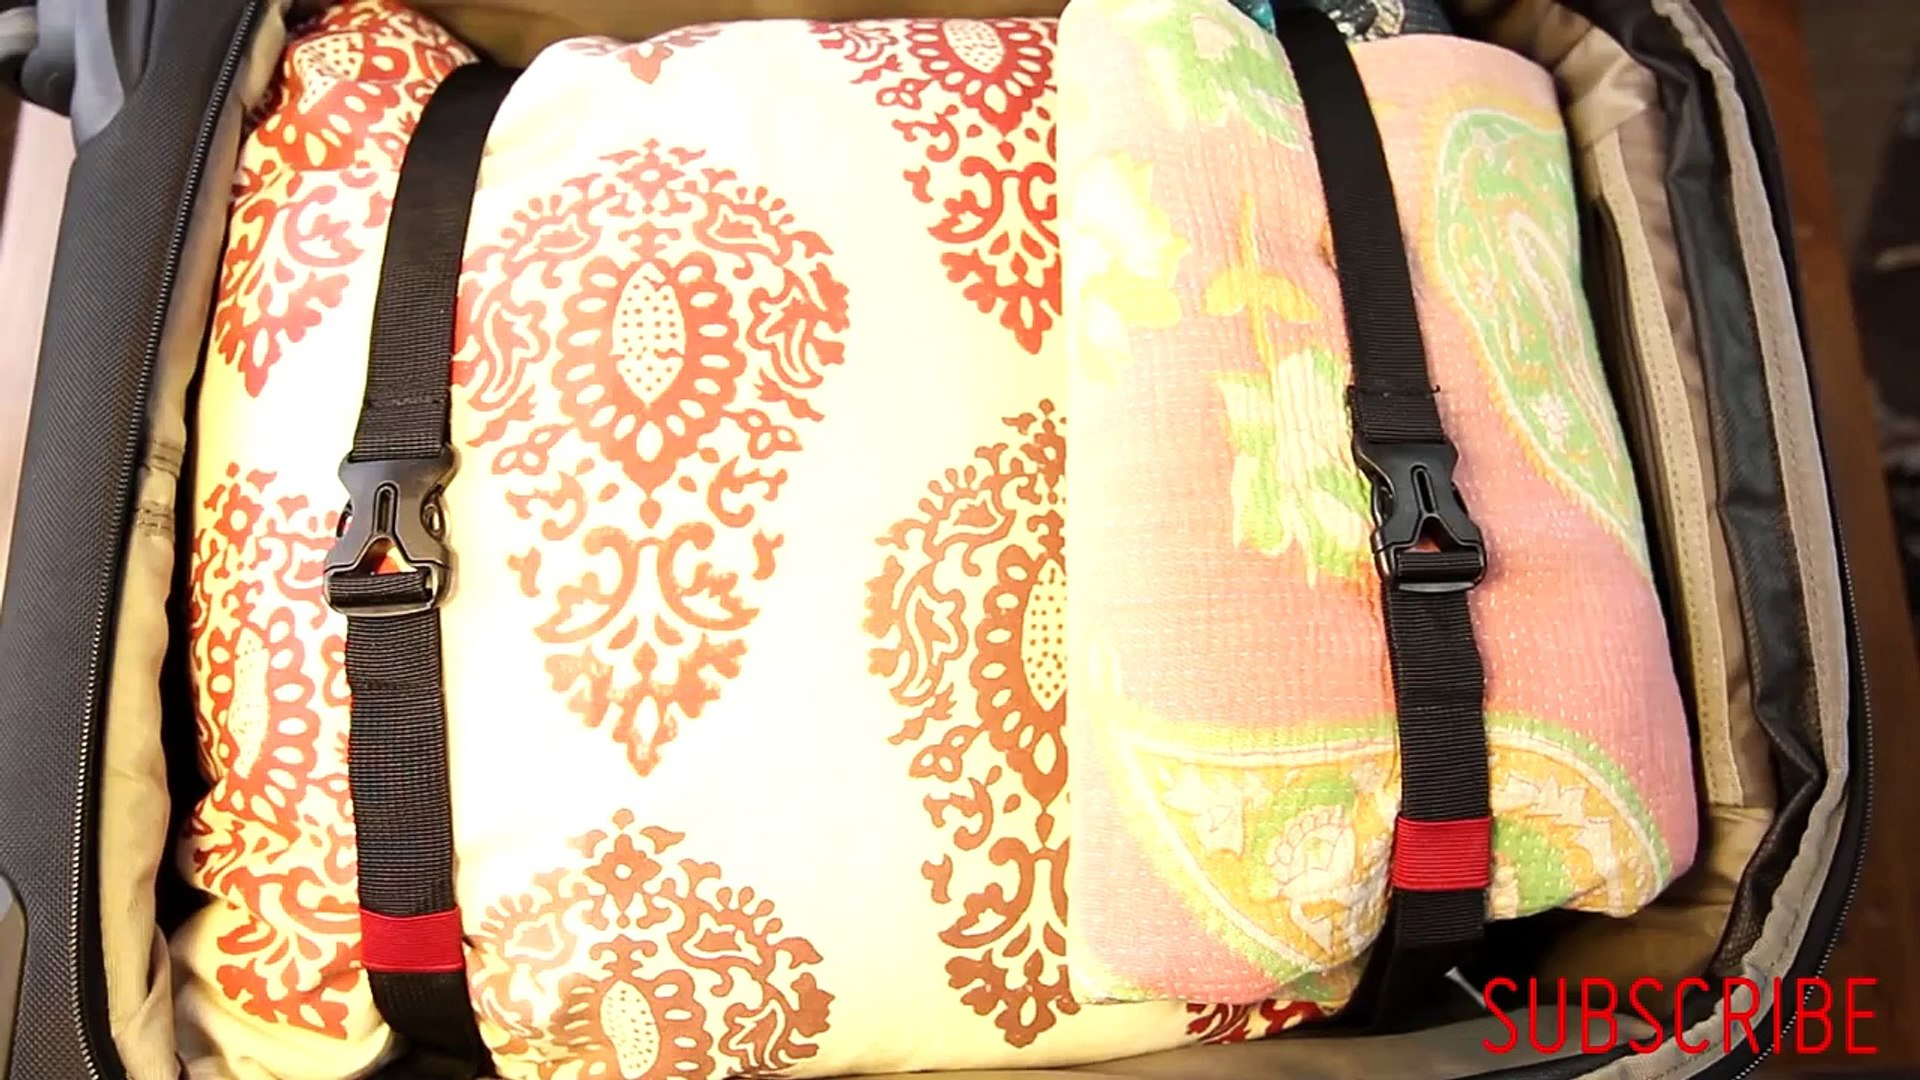 Travel Tips: How to Pack to Avoid Wrinkled Clothes